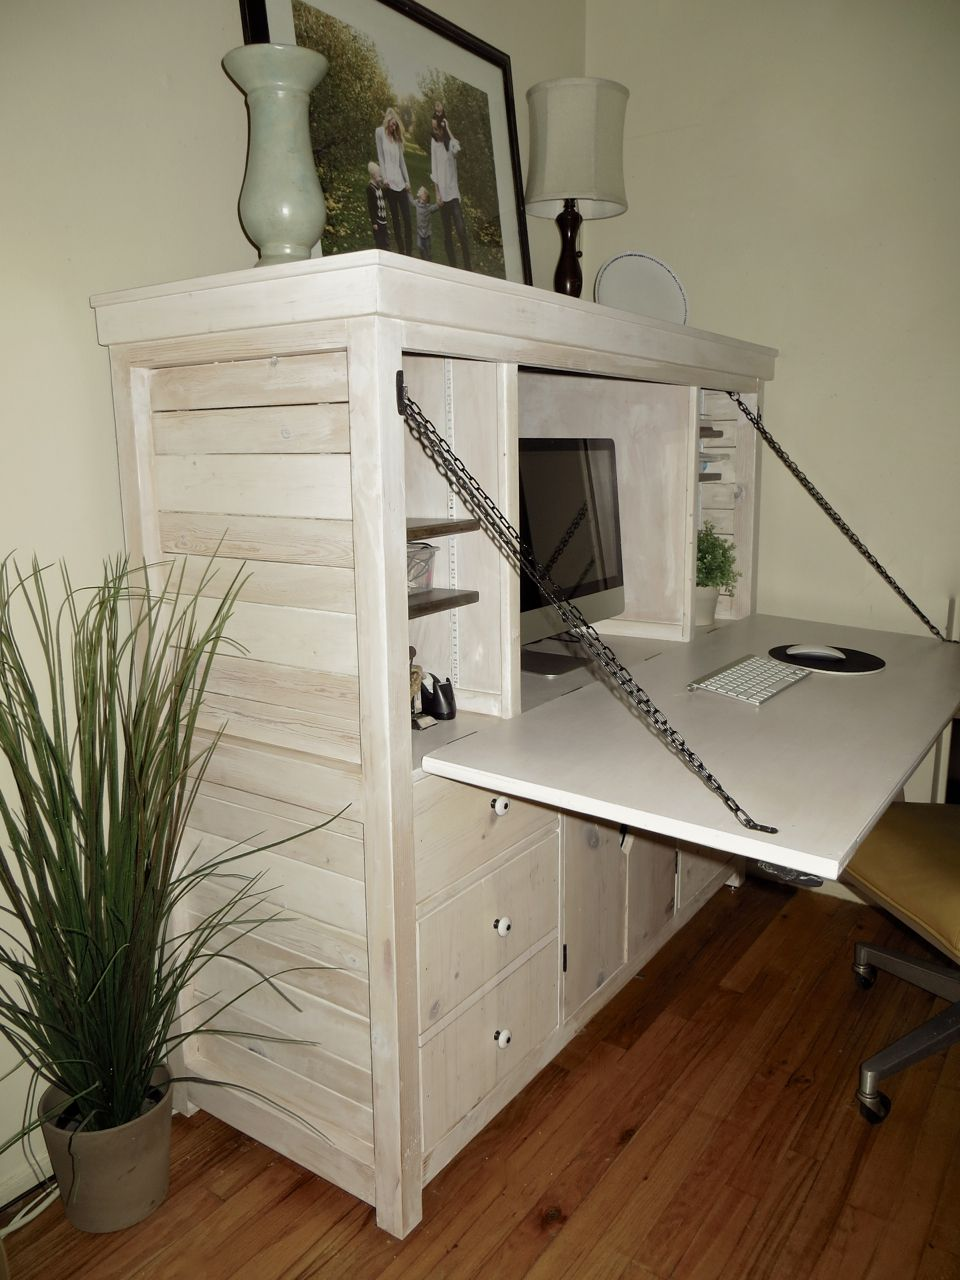 Drop down hutch desk do it yourself home projects from ana white drop down hutch desk diy projects solutioingenieria Image collections